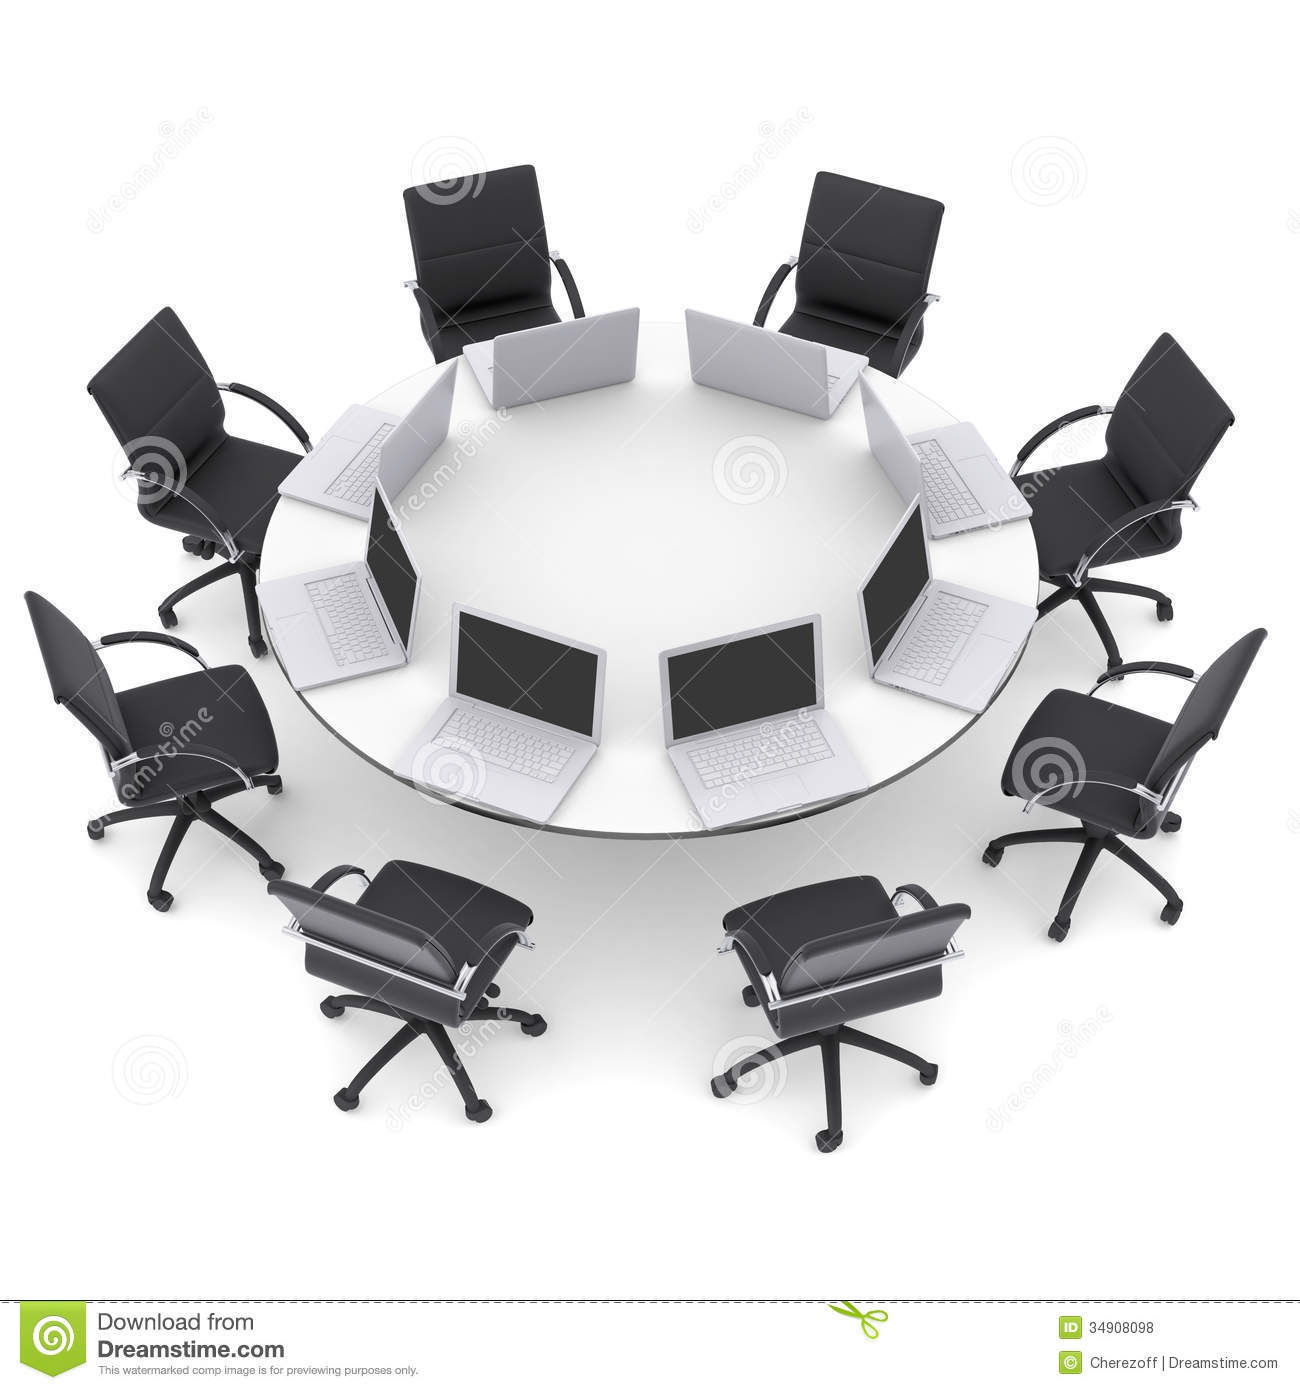 how to draw a round table